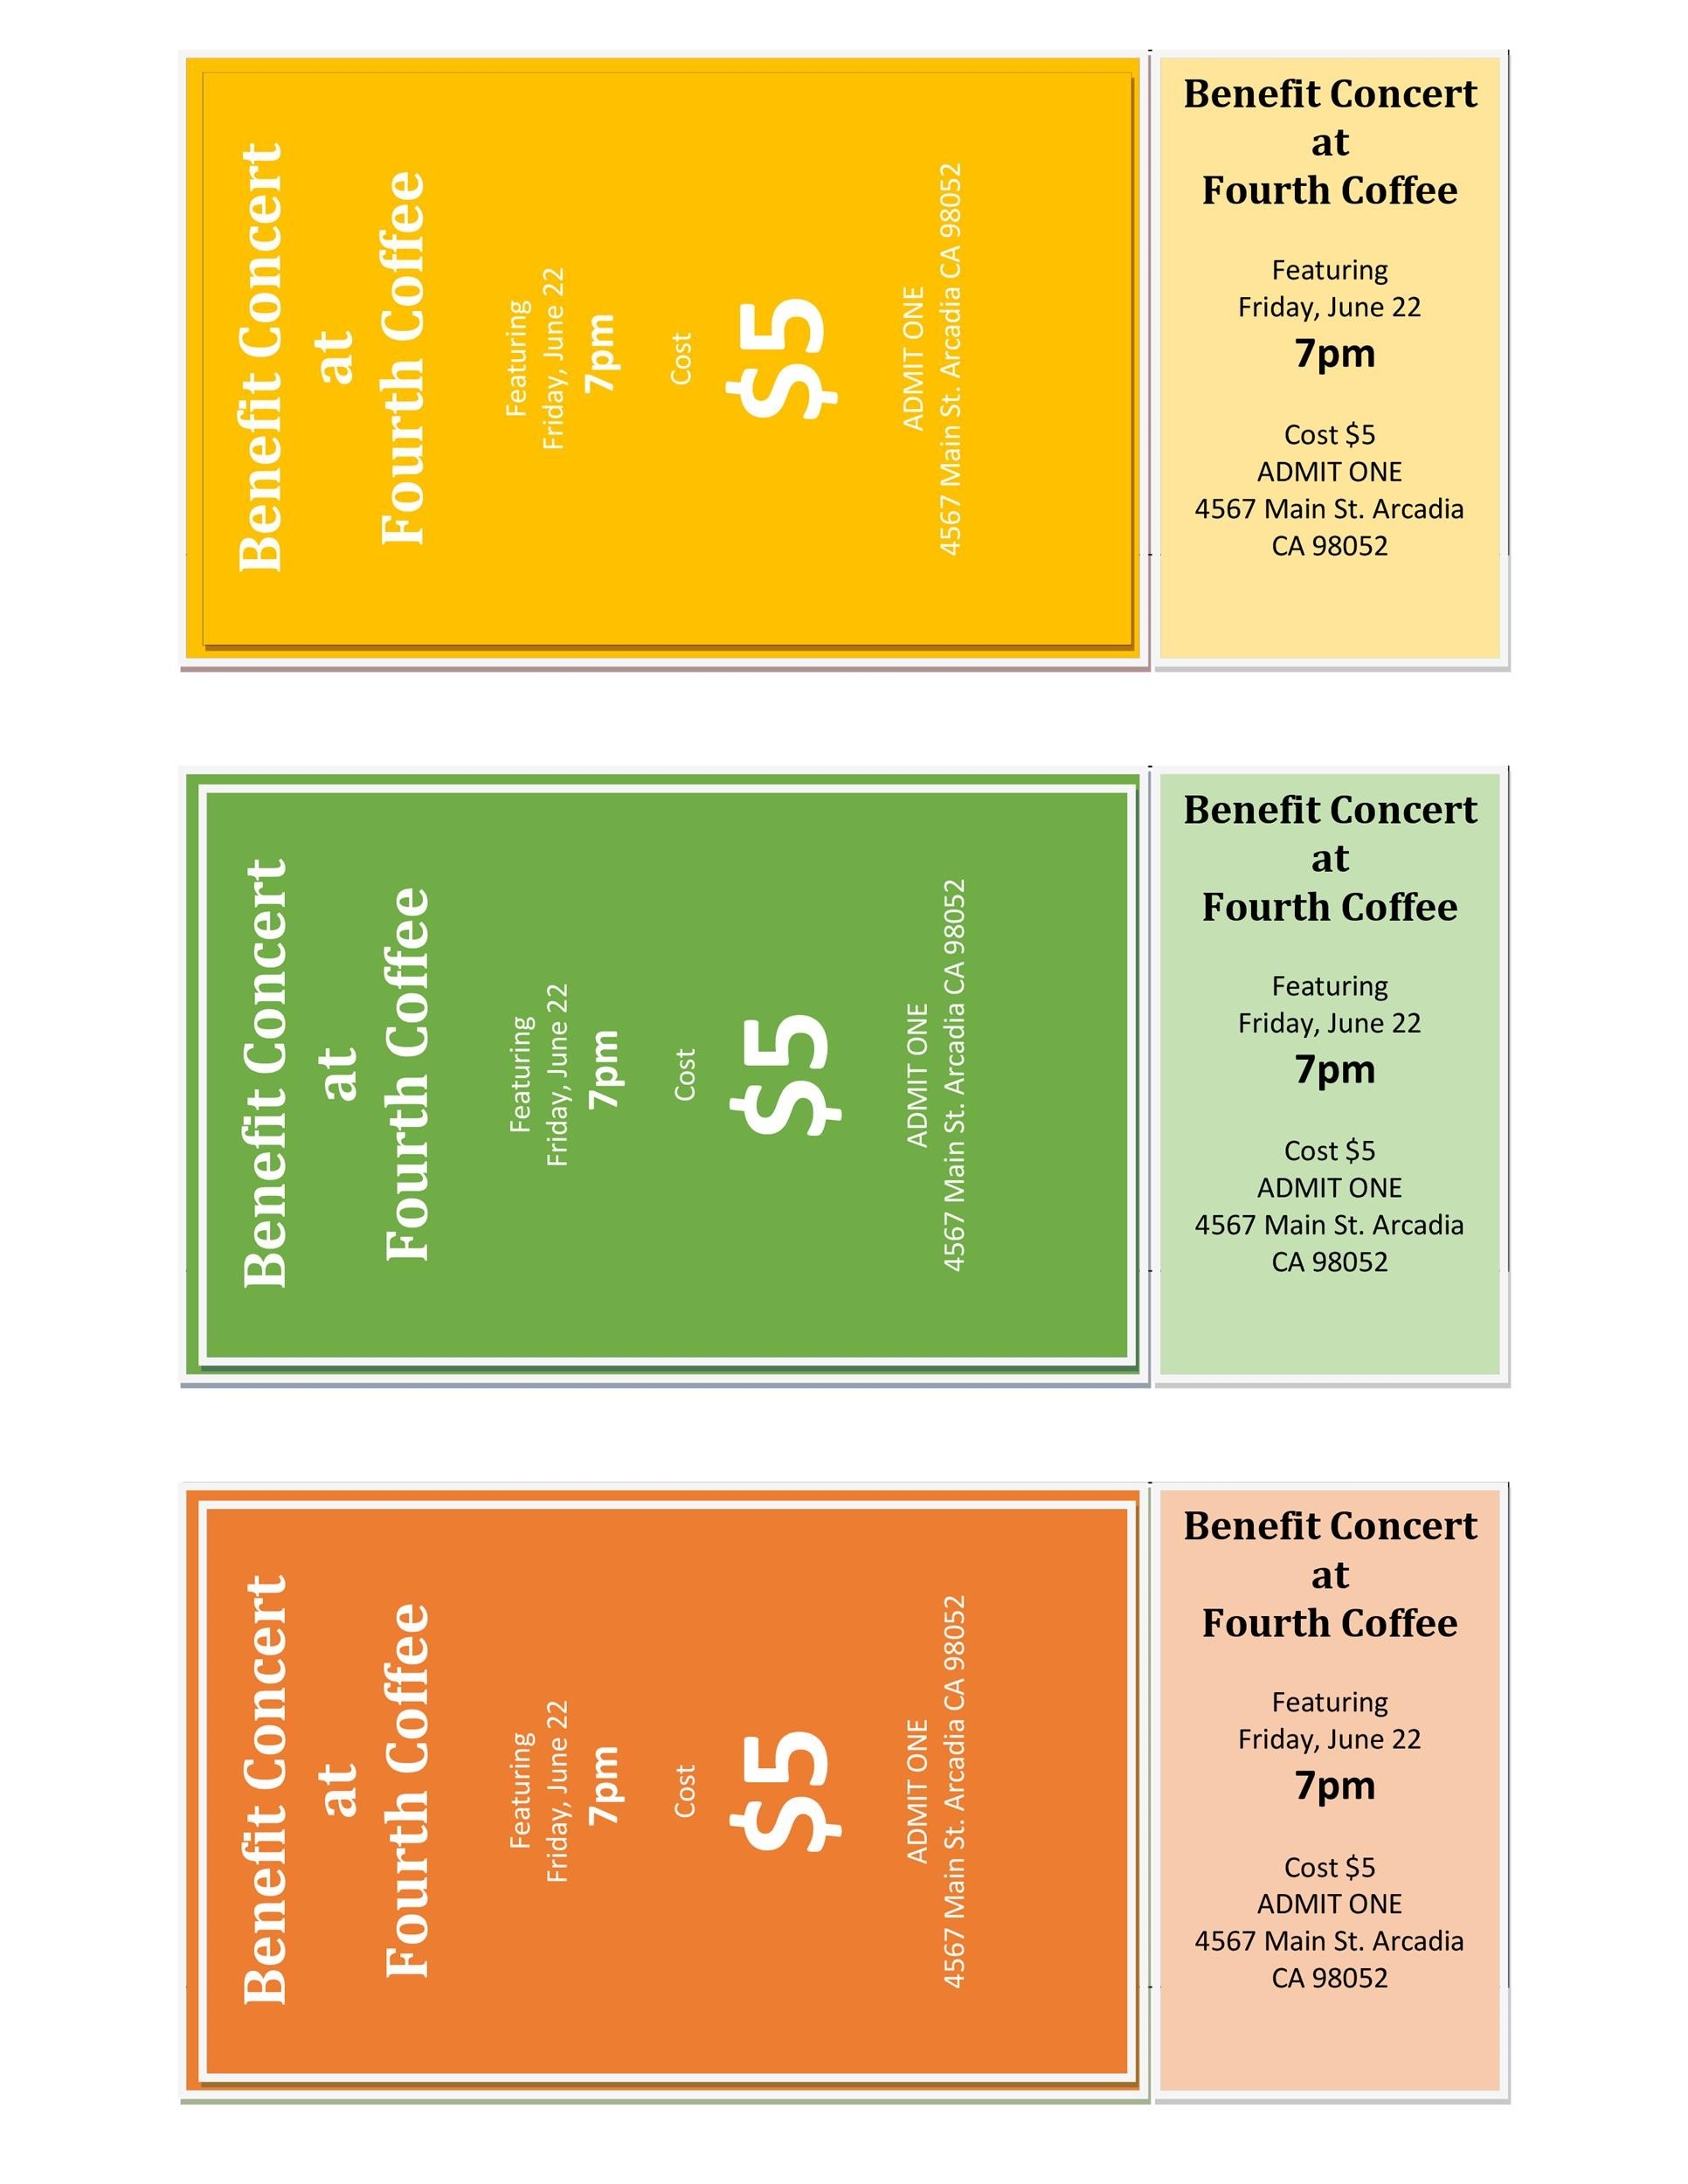 22 FREE Event Ticket Templates (MS Word) ᐅ Template Lab